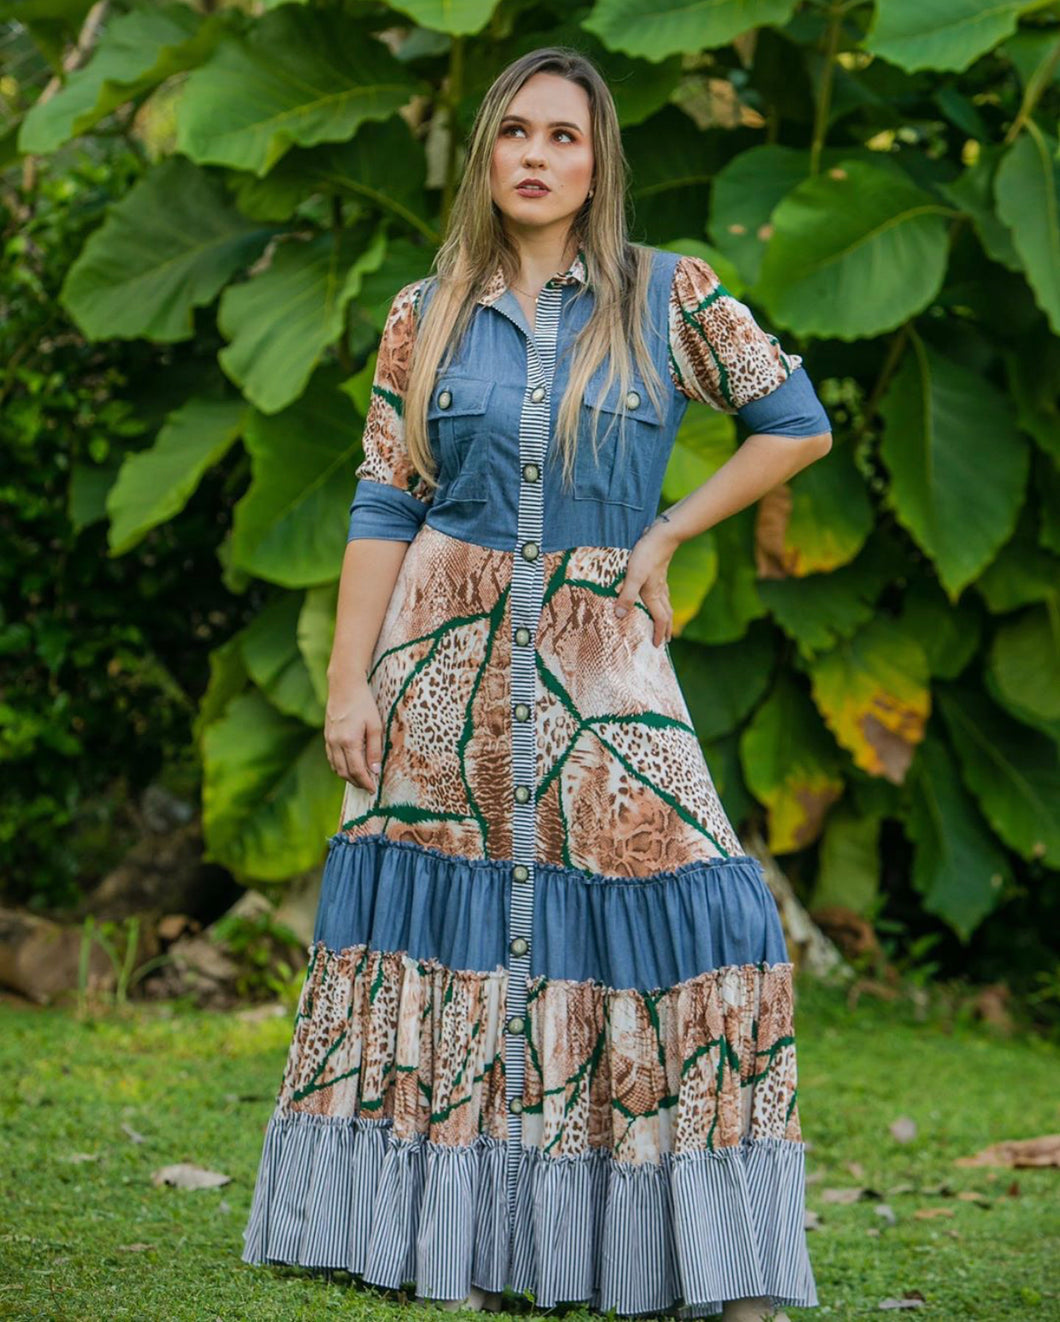 VESTIDO EN CHAMBRAY Y ANIMAL PRINT COUNTRY